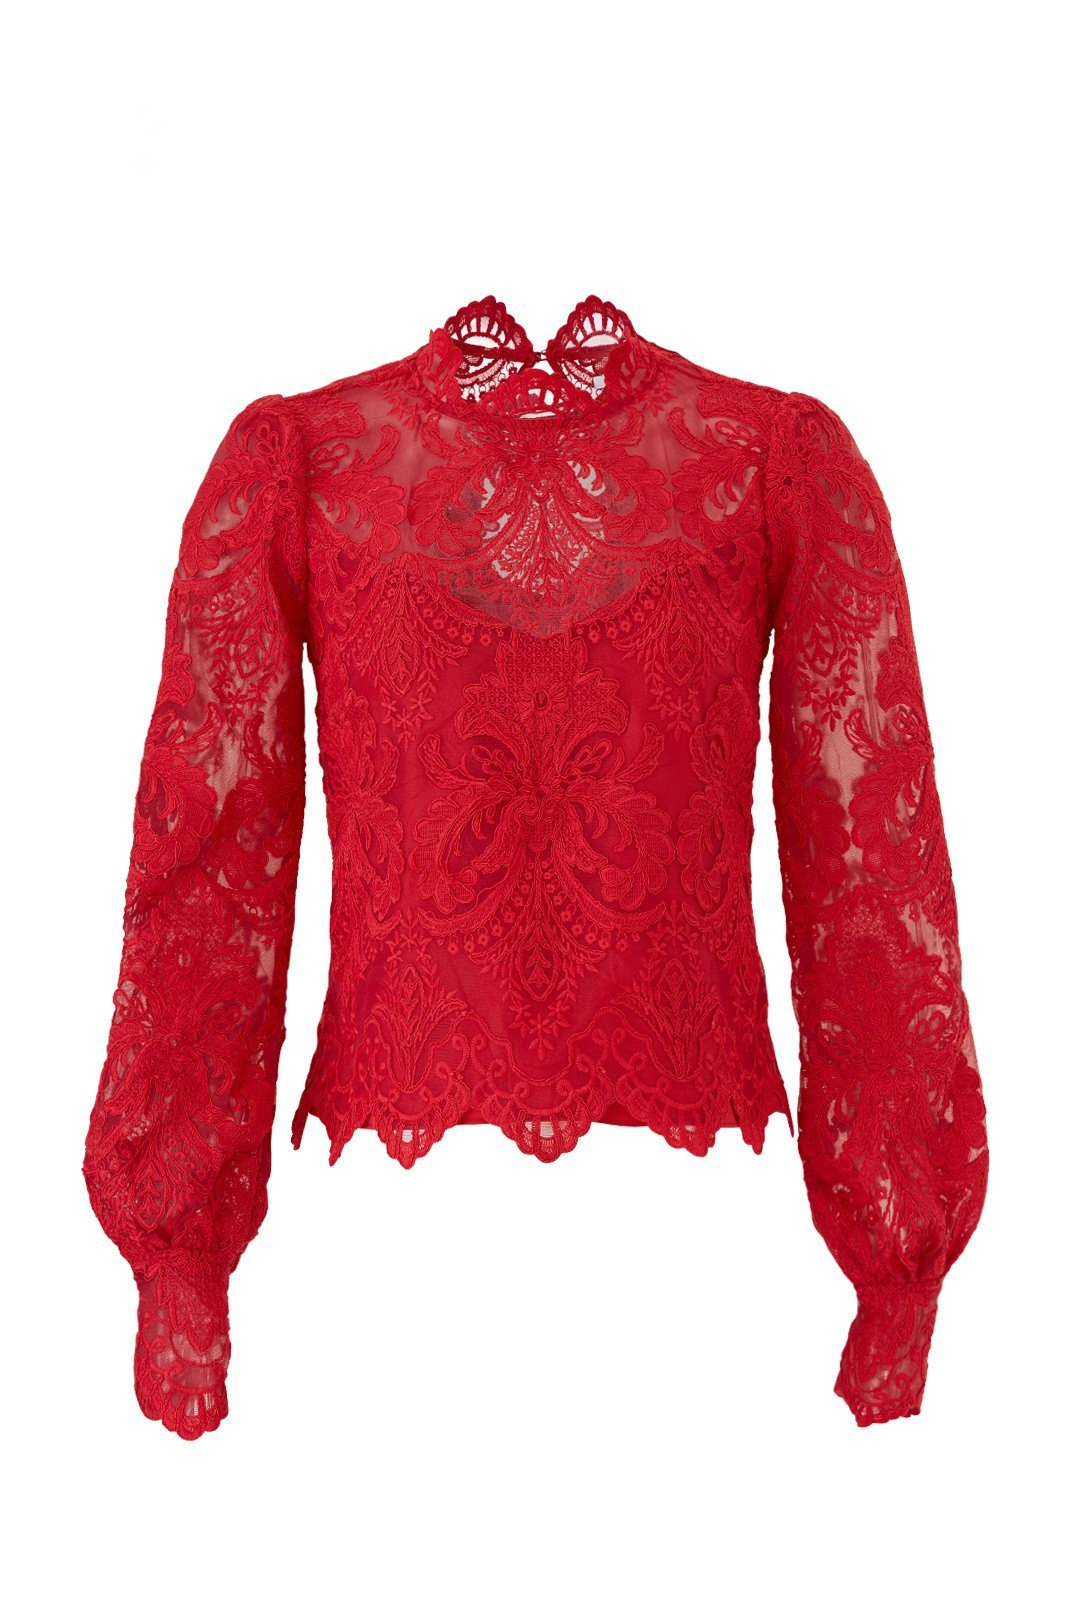 NORMA RASPBERRY LACE LONG SLEEVE OPEN BACK BLOUSE